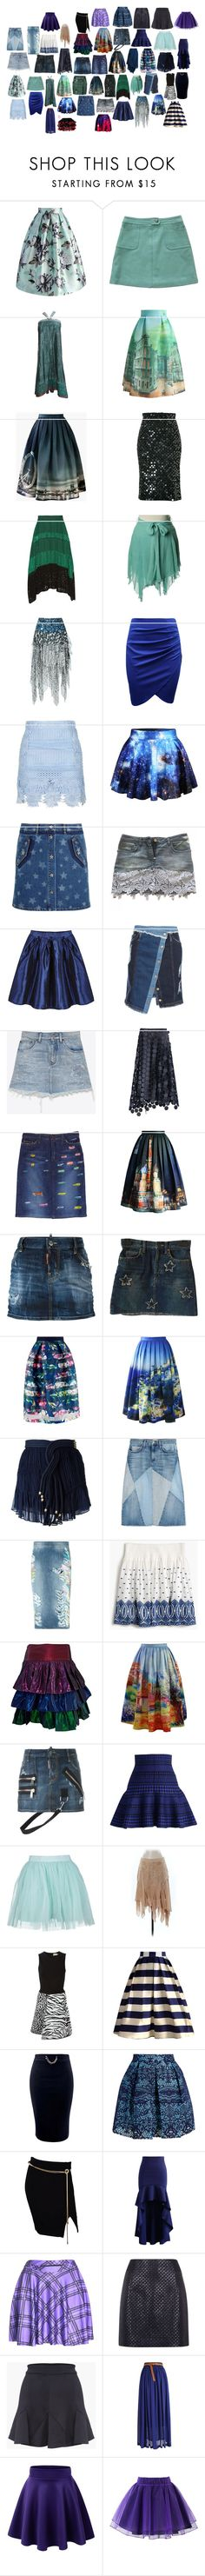 """Skirts 10"" by spellcasters ❤ liked on Polyvore featuring Chicwish, Paul & Joe, Anthony Vaccarello, Cédric Charlier, Proenza Schouler, Faith Connexion, Topshop, Valentino, Dolce&Gabbana and SJYP"